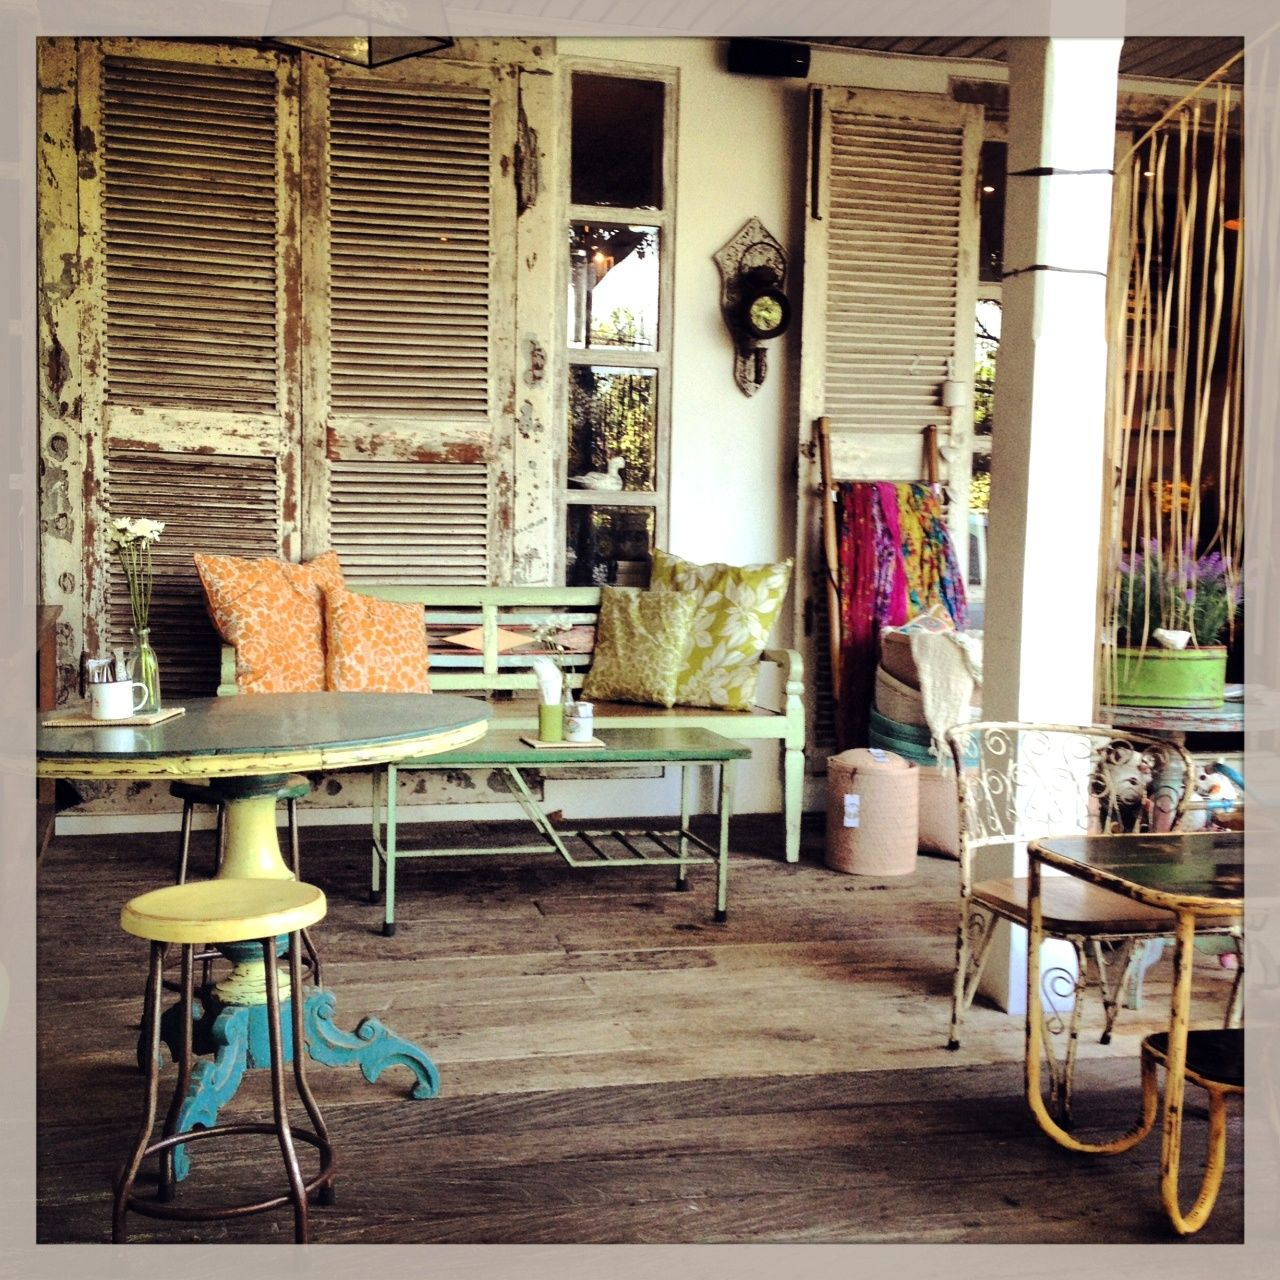 Bungalow Cafe And Shop - Canggu Bali